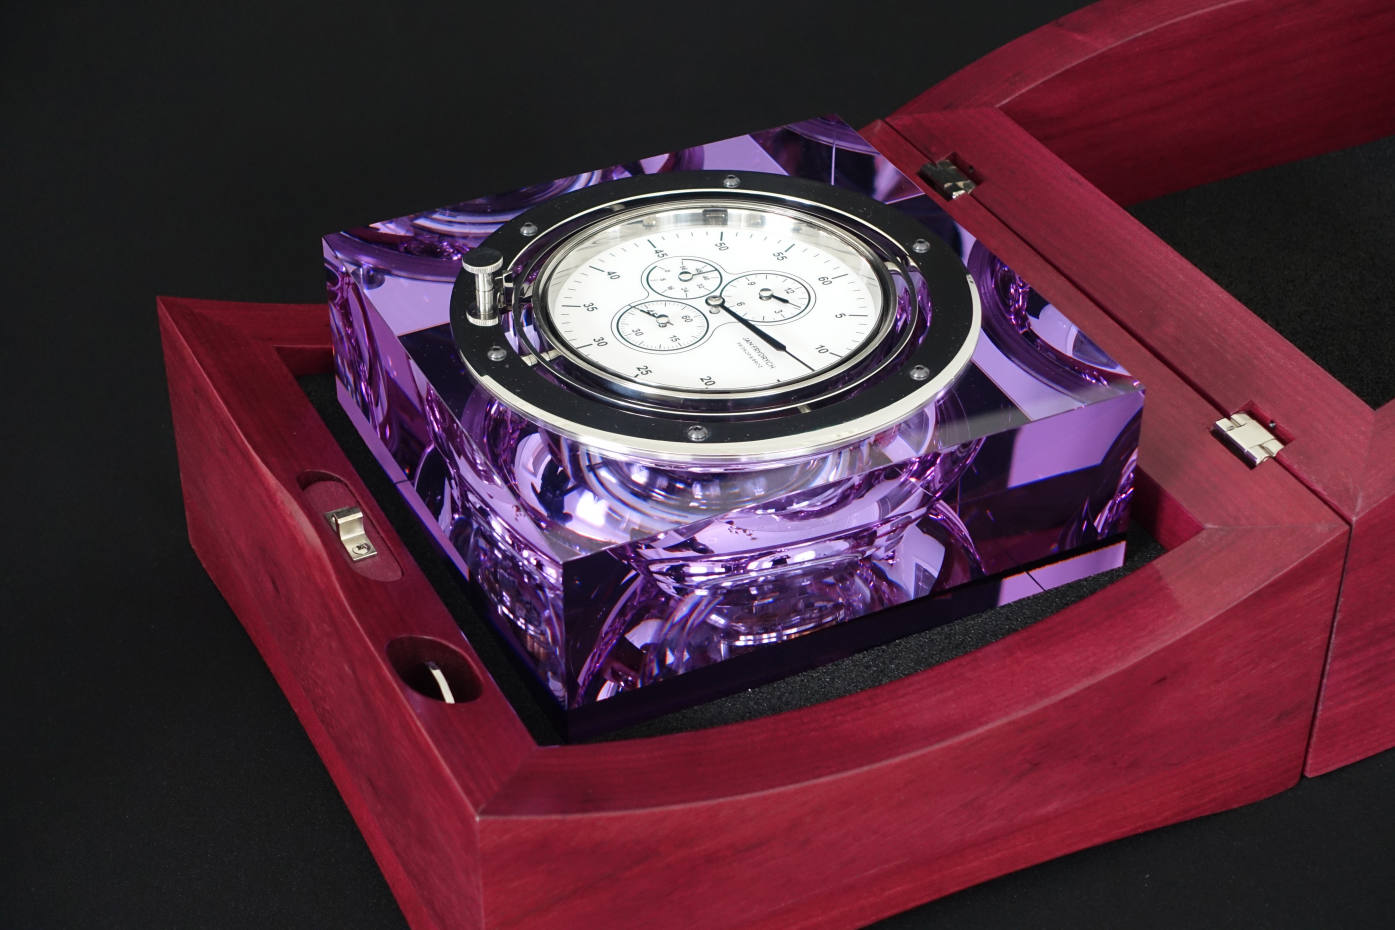 Jan Frydrych glass and heartwood marine chronometer